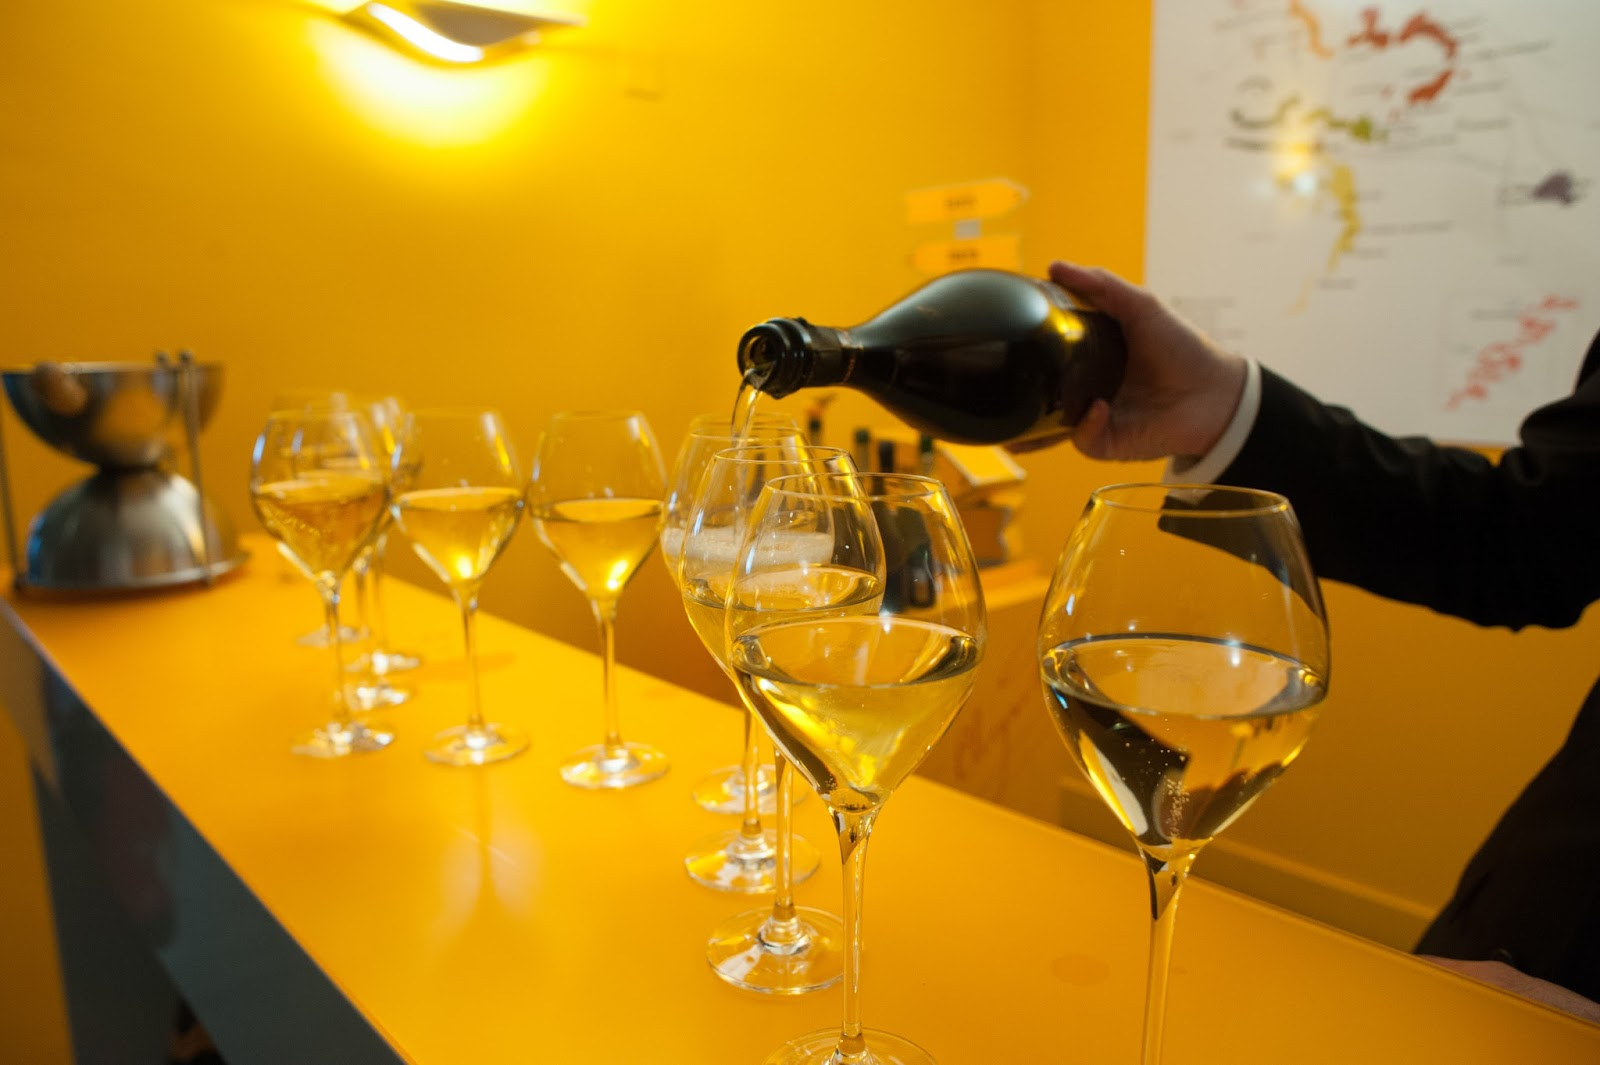 Tasting at Veuve Cliquot Champagne Cave Tour Outside Paris in Reims